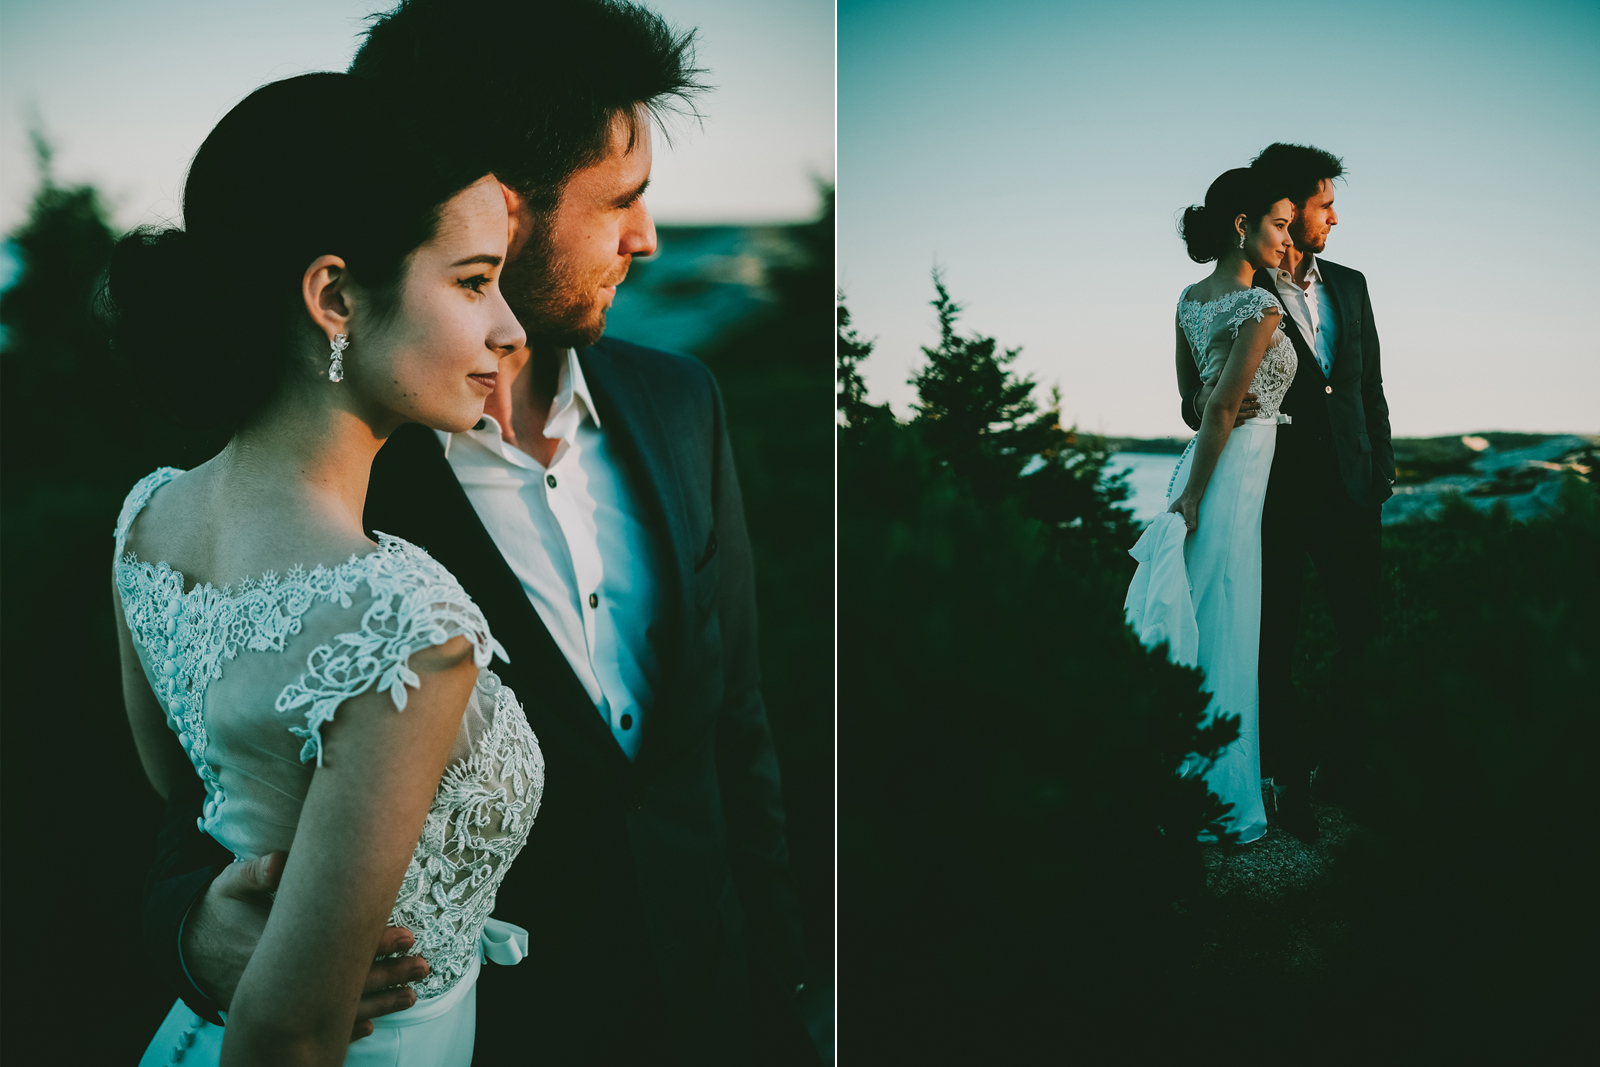 herring-cove-wedding-photography-fuji-xpro2.jpg